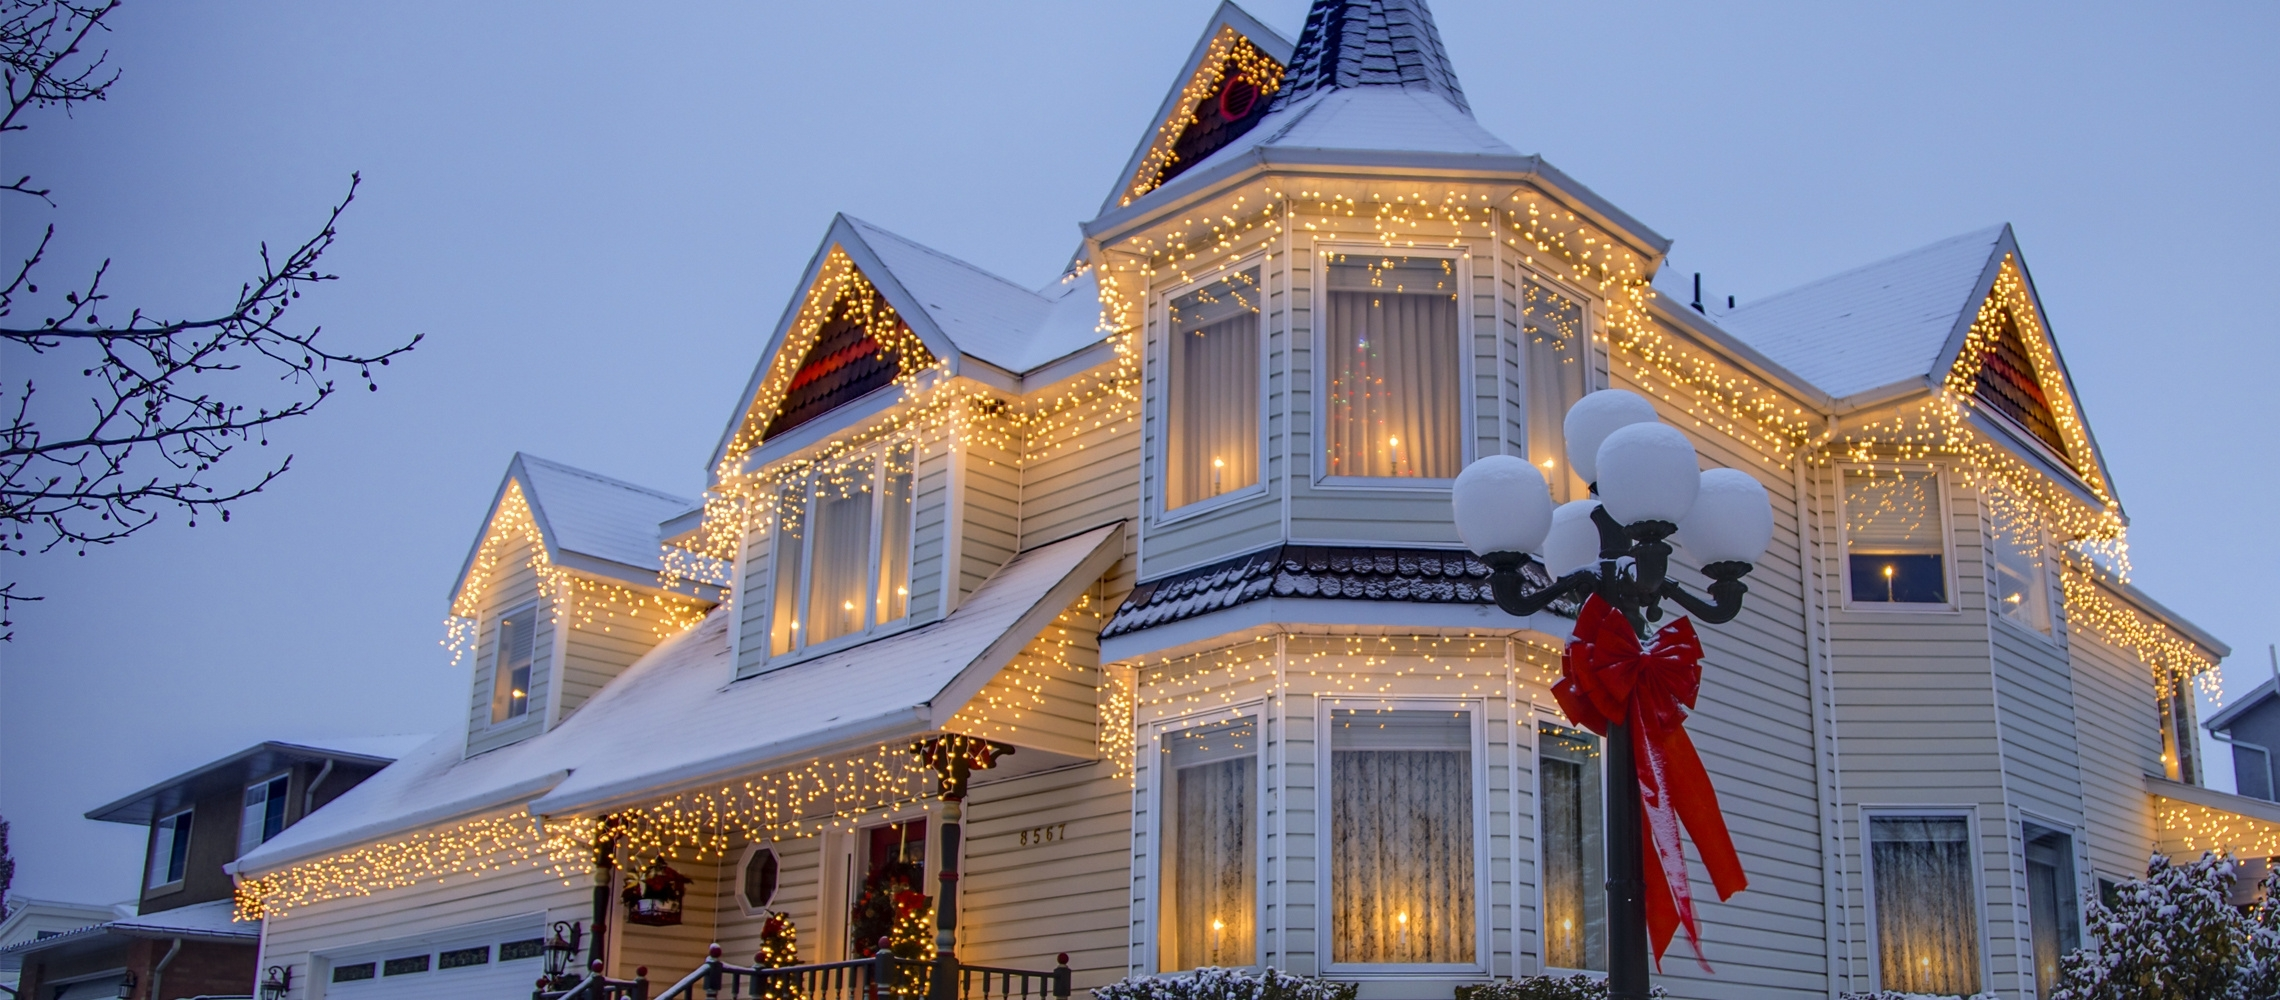 Christmas Lights Ideas For The Roof Throughout Outdoor Hanging Lights For Christmas (View 7 of 15)